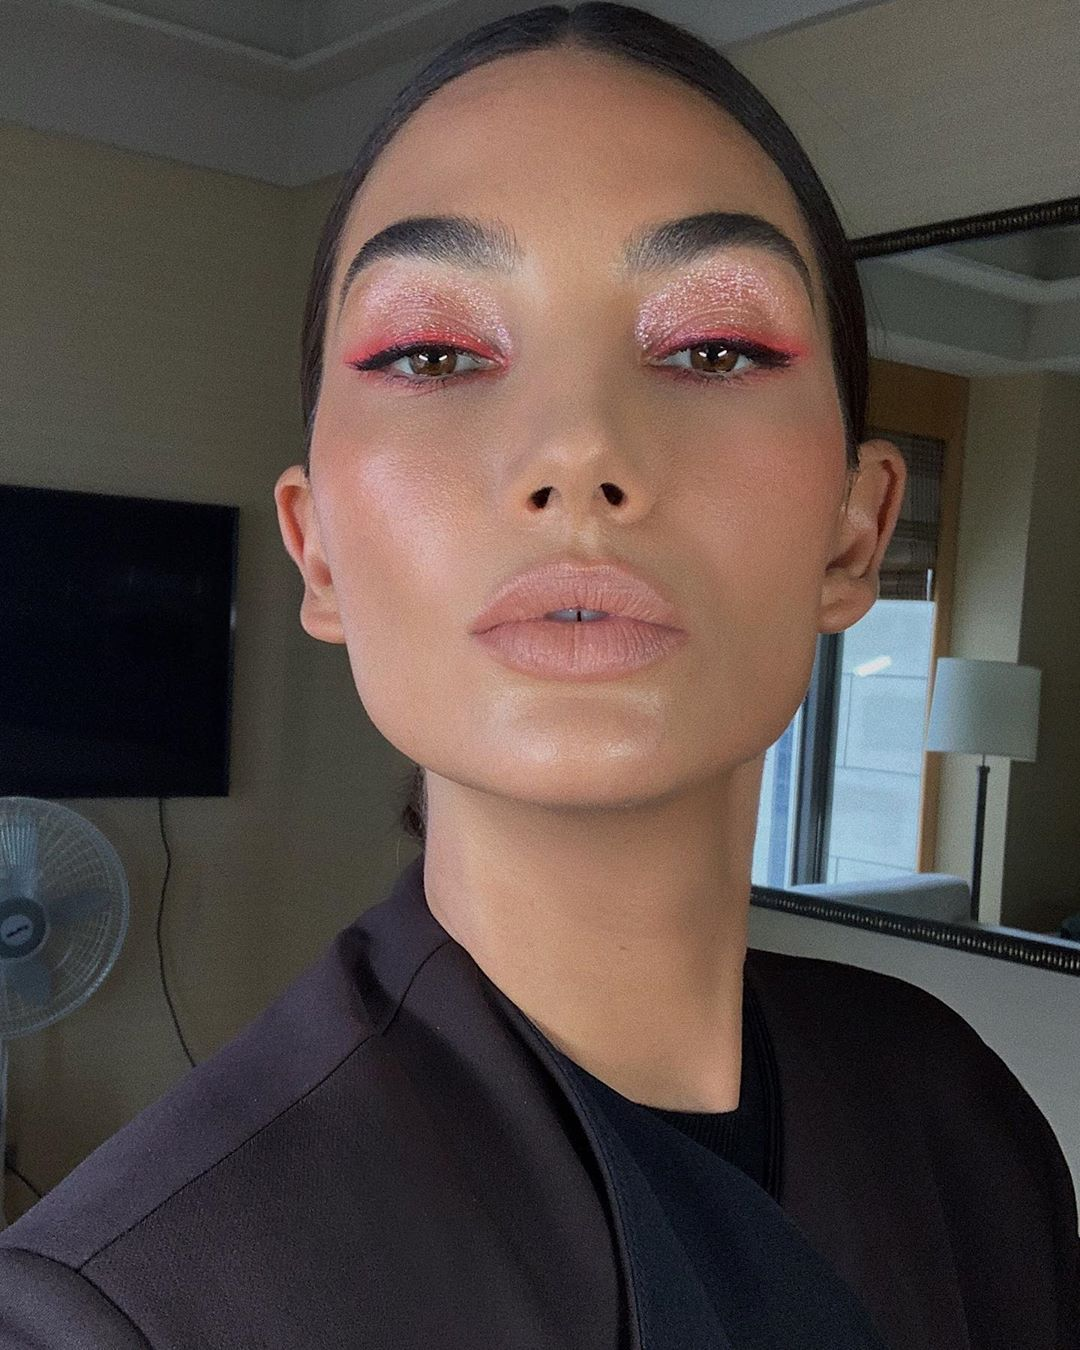 It's Official: These Are Going to Be the 8 Biggest Makeup Trends in 2020